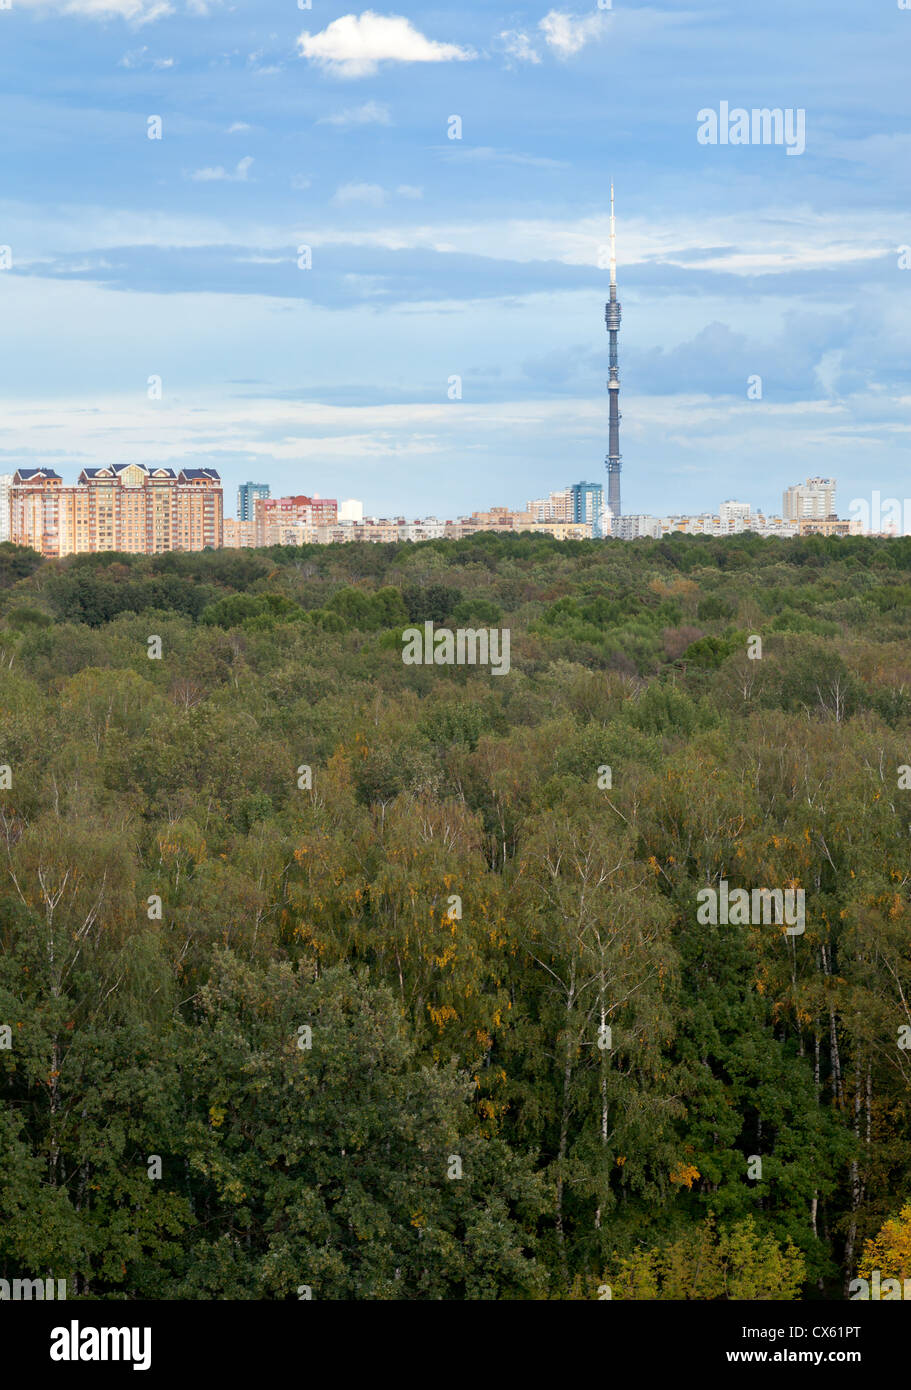 autumn urban park under blue sky - Stock Image